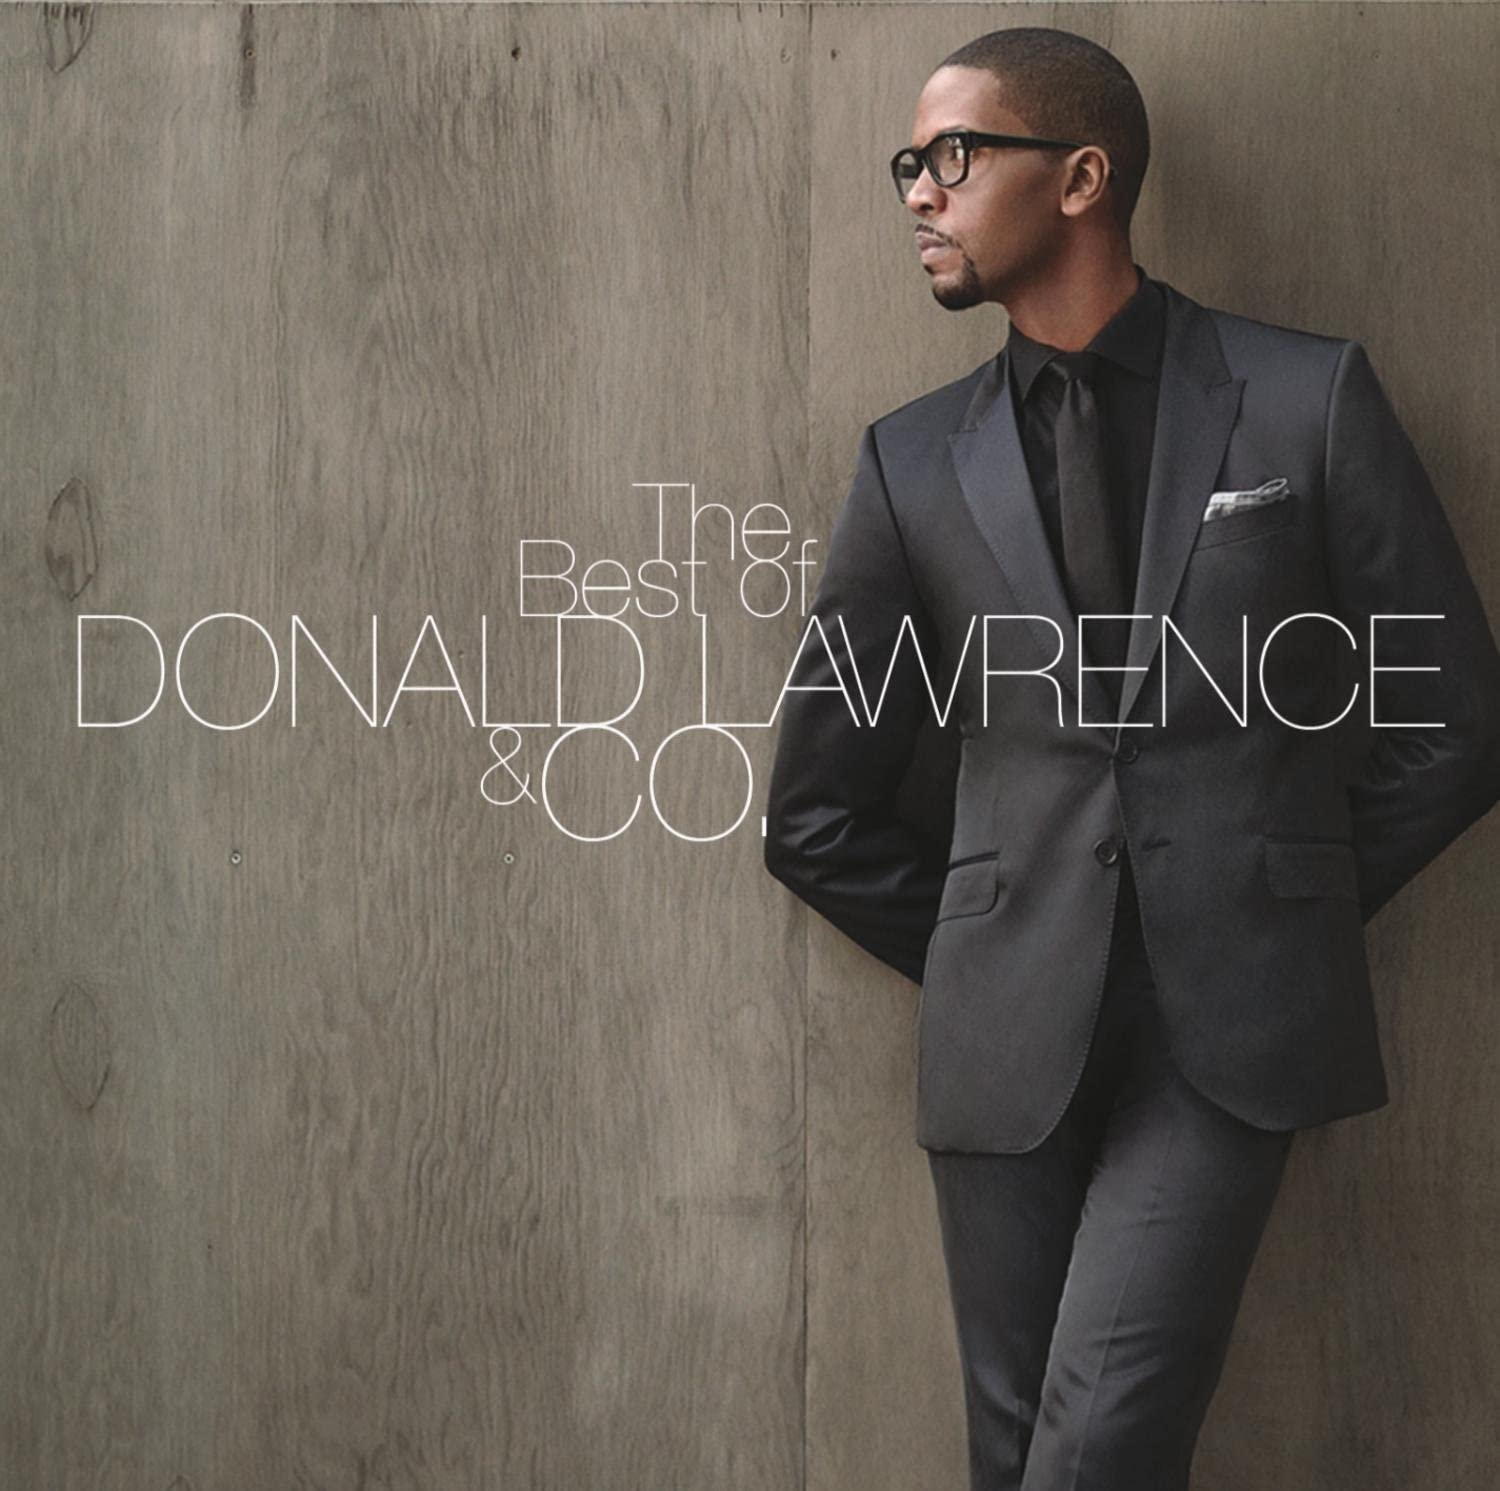 Lawrence, Donald & Co/The Best Of [CD]